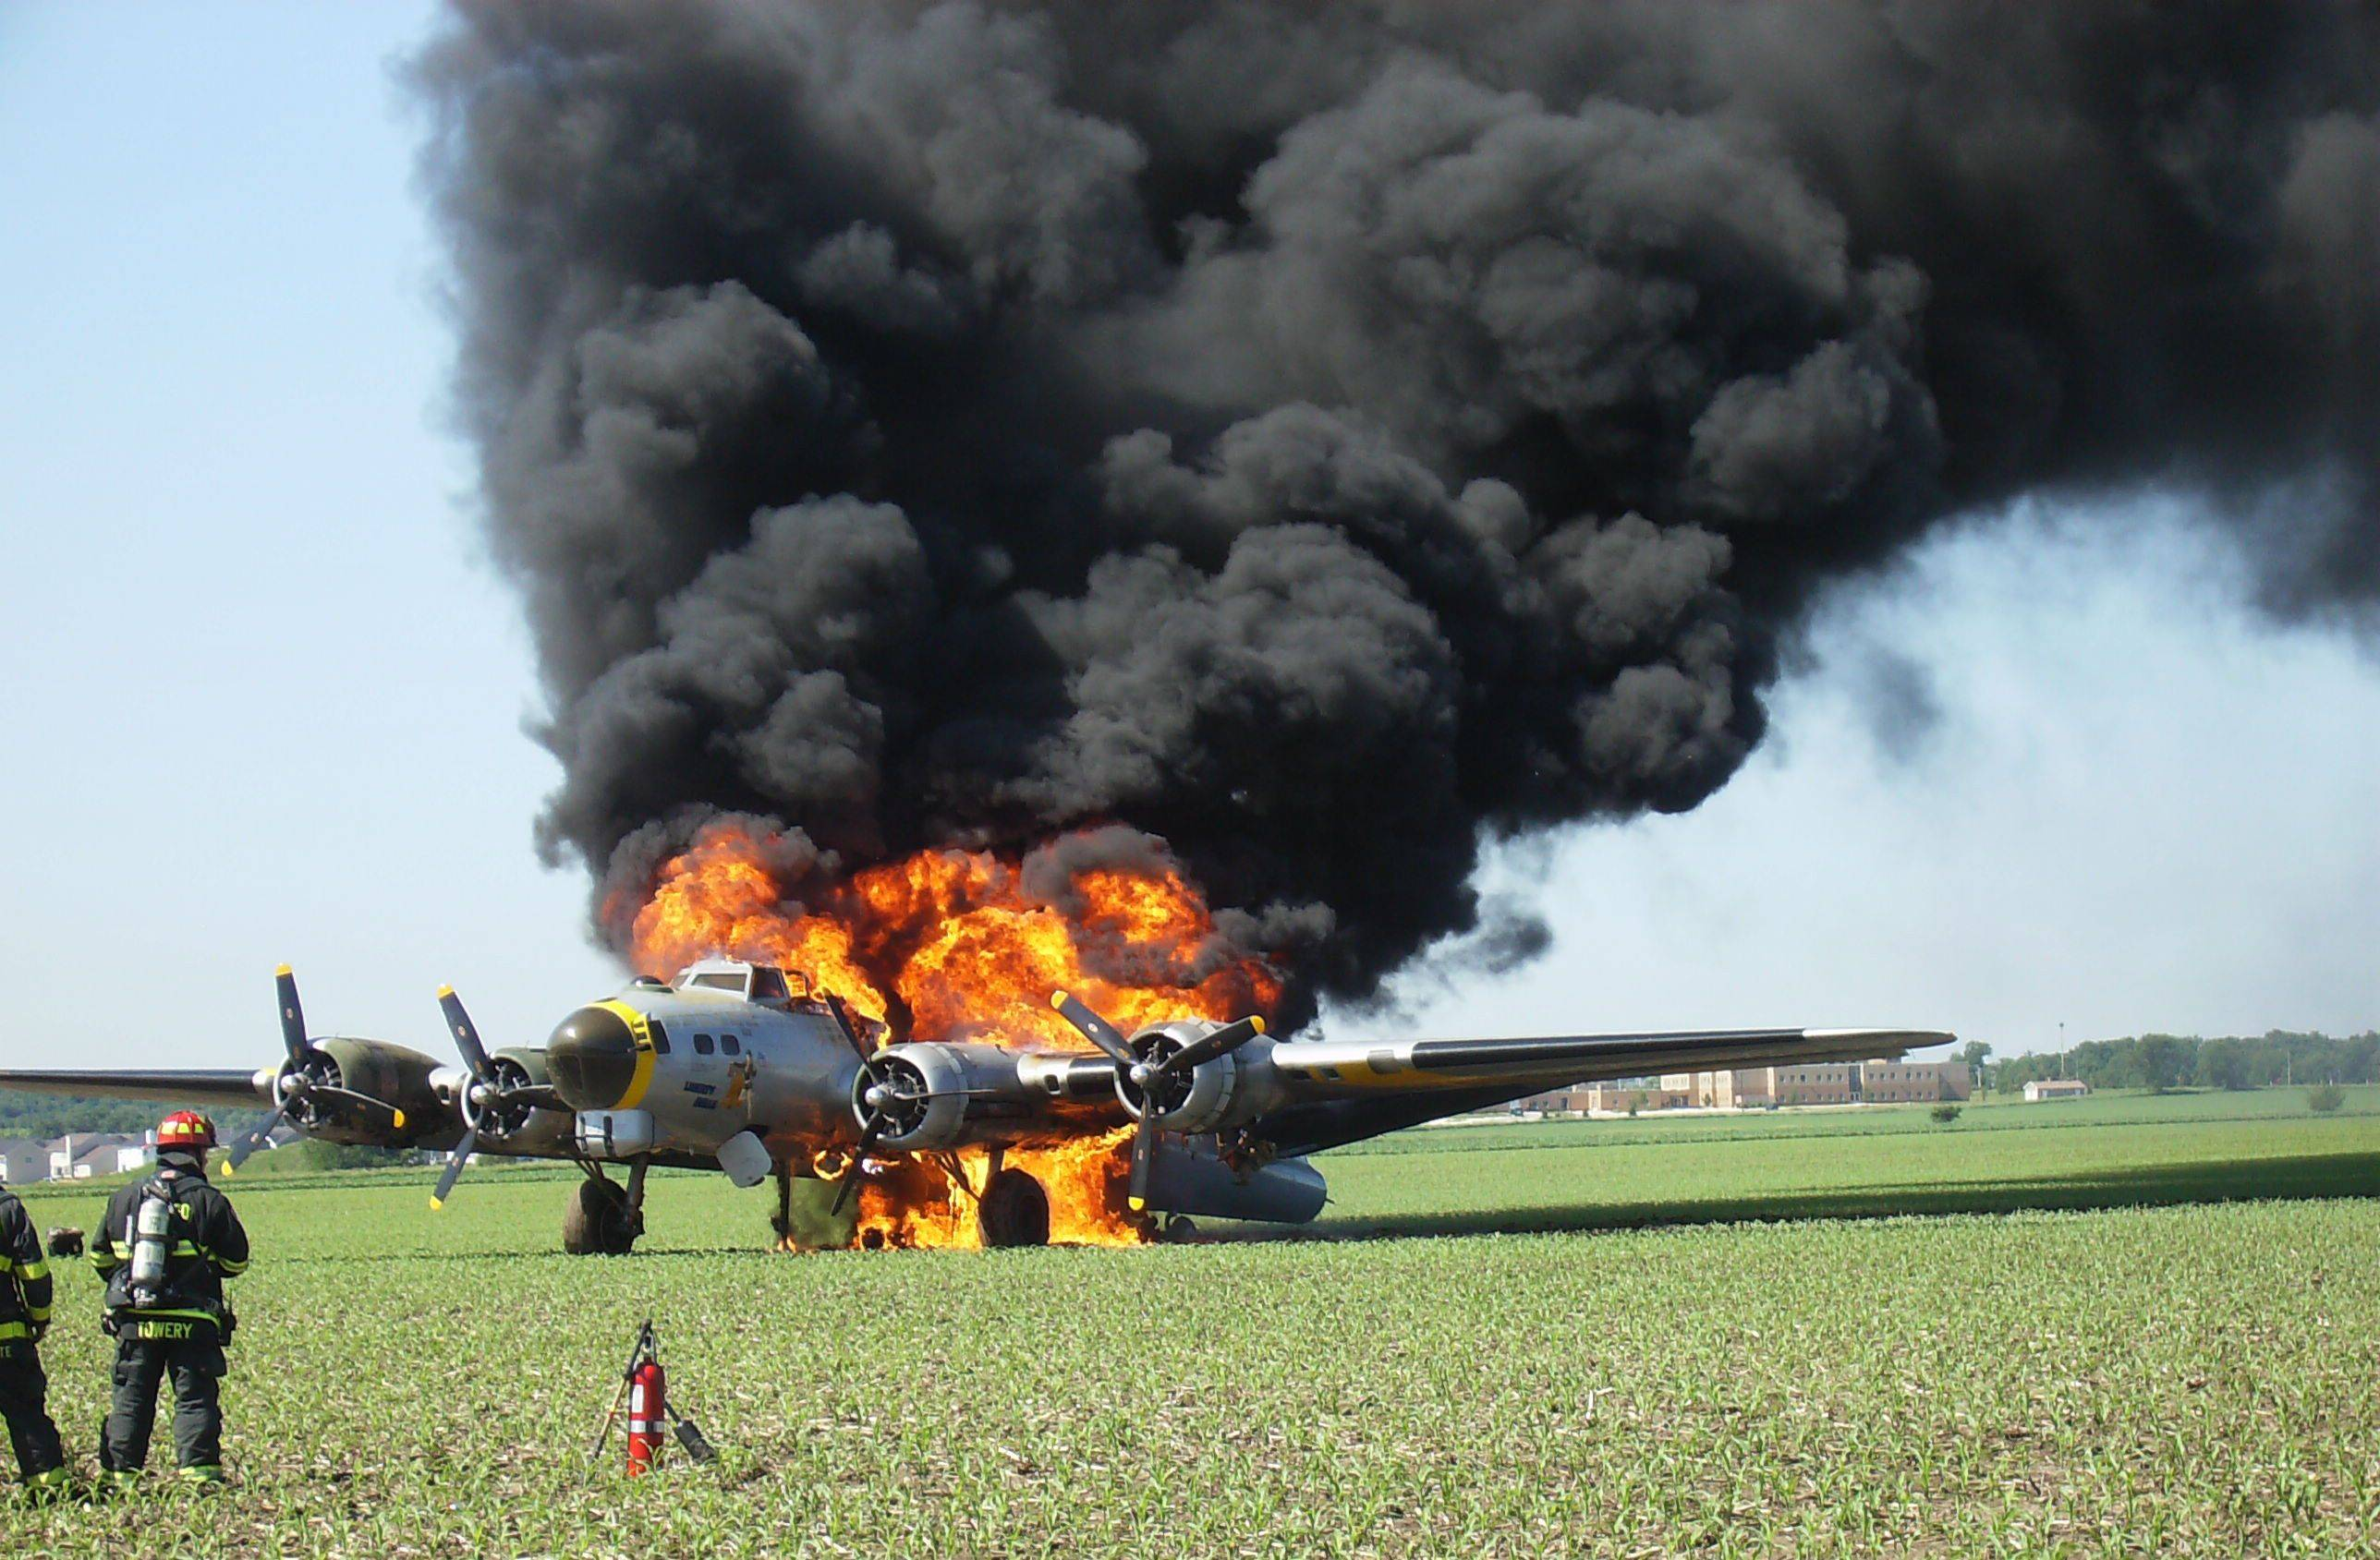 A restored World War II-era B-17 bomber burst into flames Monday after making an emergency landing in an Oswego field. There were seven people aboard at the time, authorities said, and one received minor injuries.